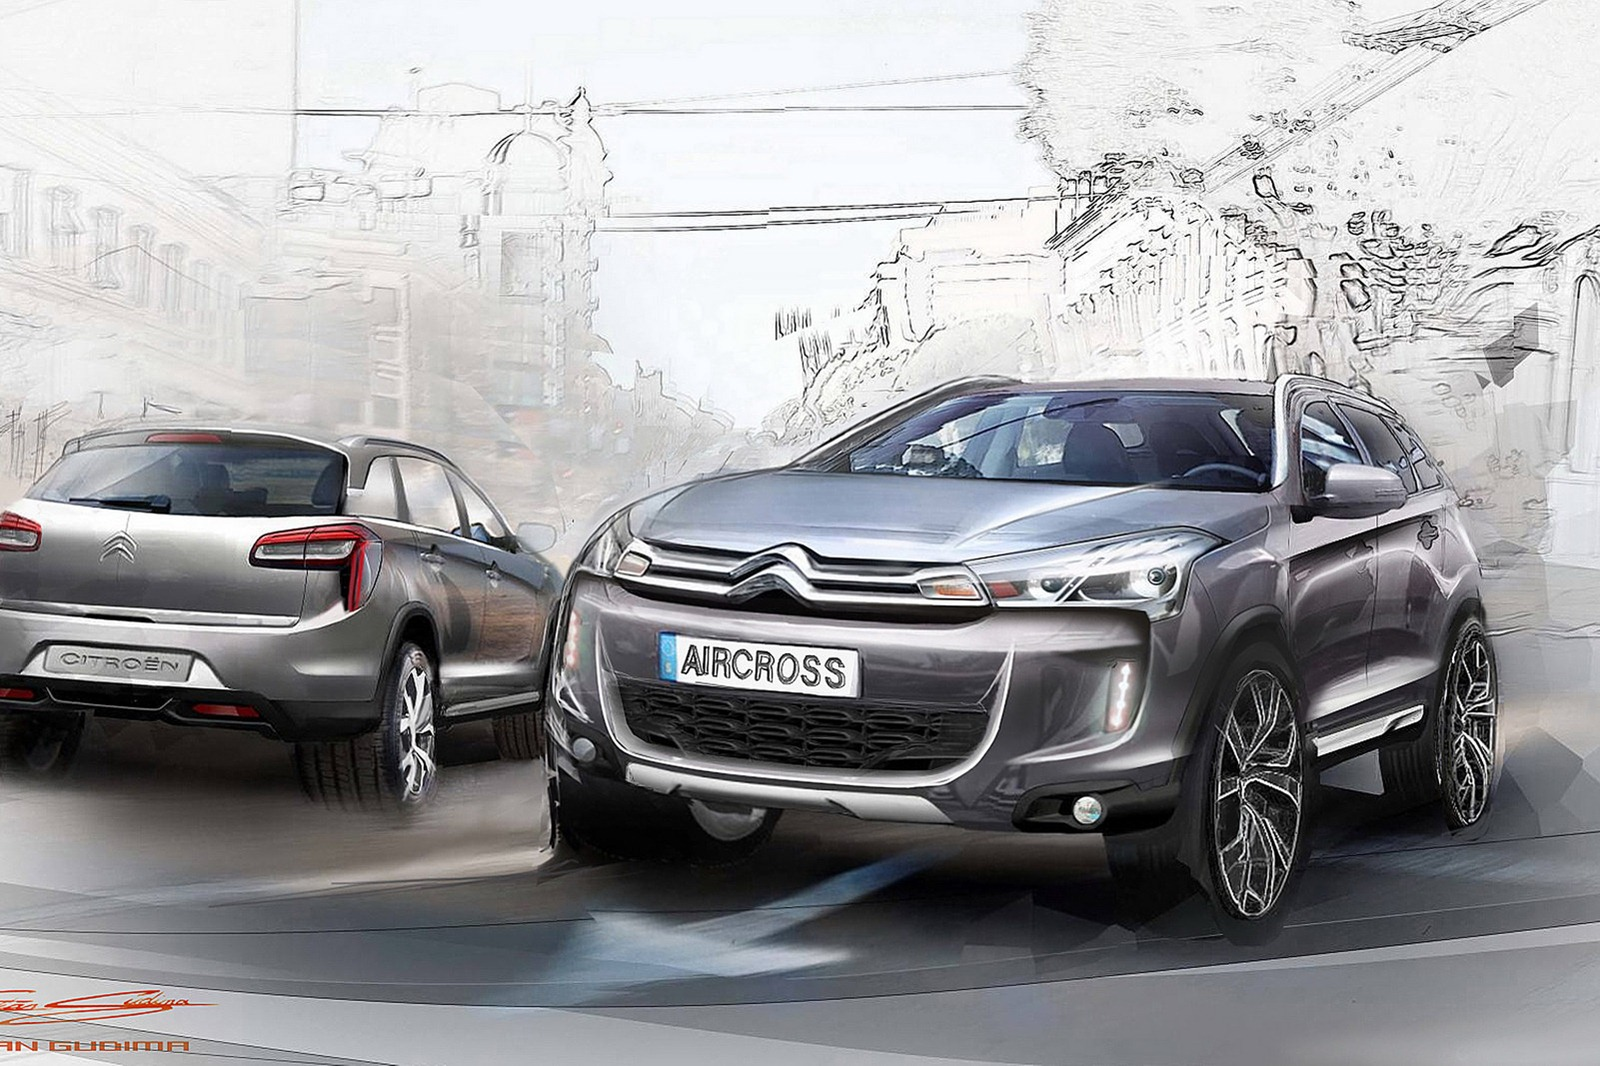 citroen c4 aircross new photos ahead of geneva debut. Black Bedroom Furniture Sets. Home Design Ideas